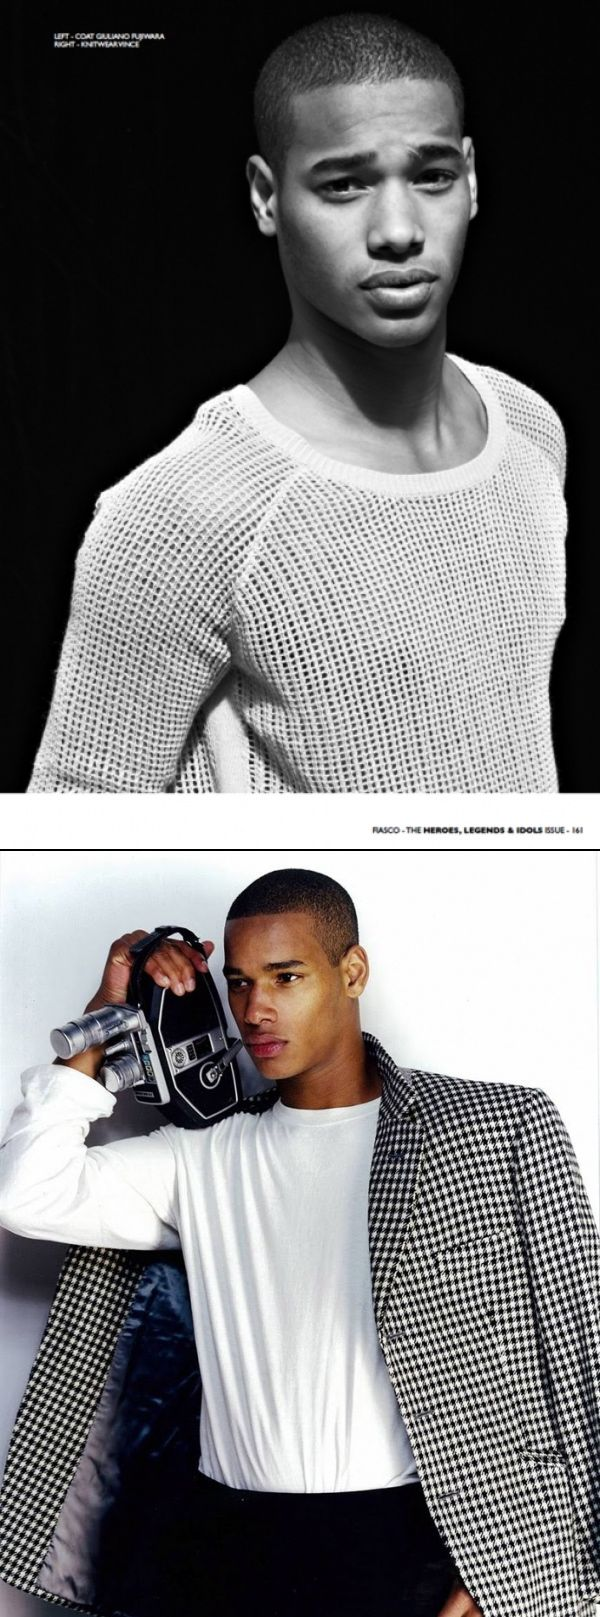 AFRICAN MALE MODELS - Sacha M'Baye (Senegal/ France)/ Height 6'2″/ Agency: Select (London), Why Not (Milan), New Madison (Paris) At just over 23 years, Sacha is one of our favorite models and has already modeled for Gap, American Eagle, Stone Island, GQ Style, and Burberry. No need to keep an eye on him, he already took the runway by storm. -- He's also a semi-pro soccer.